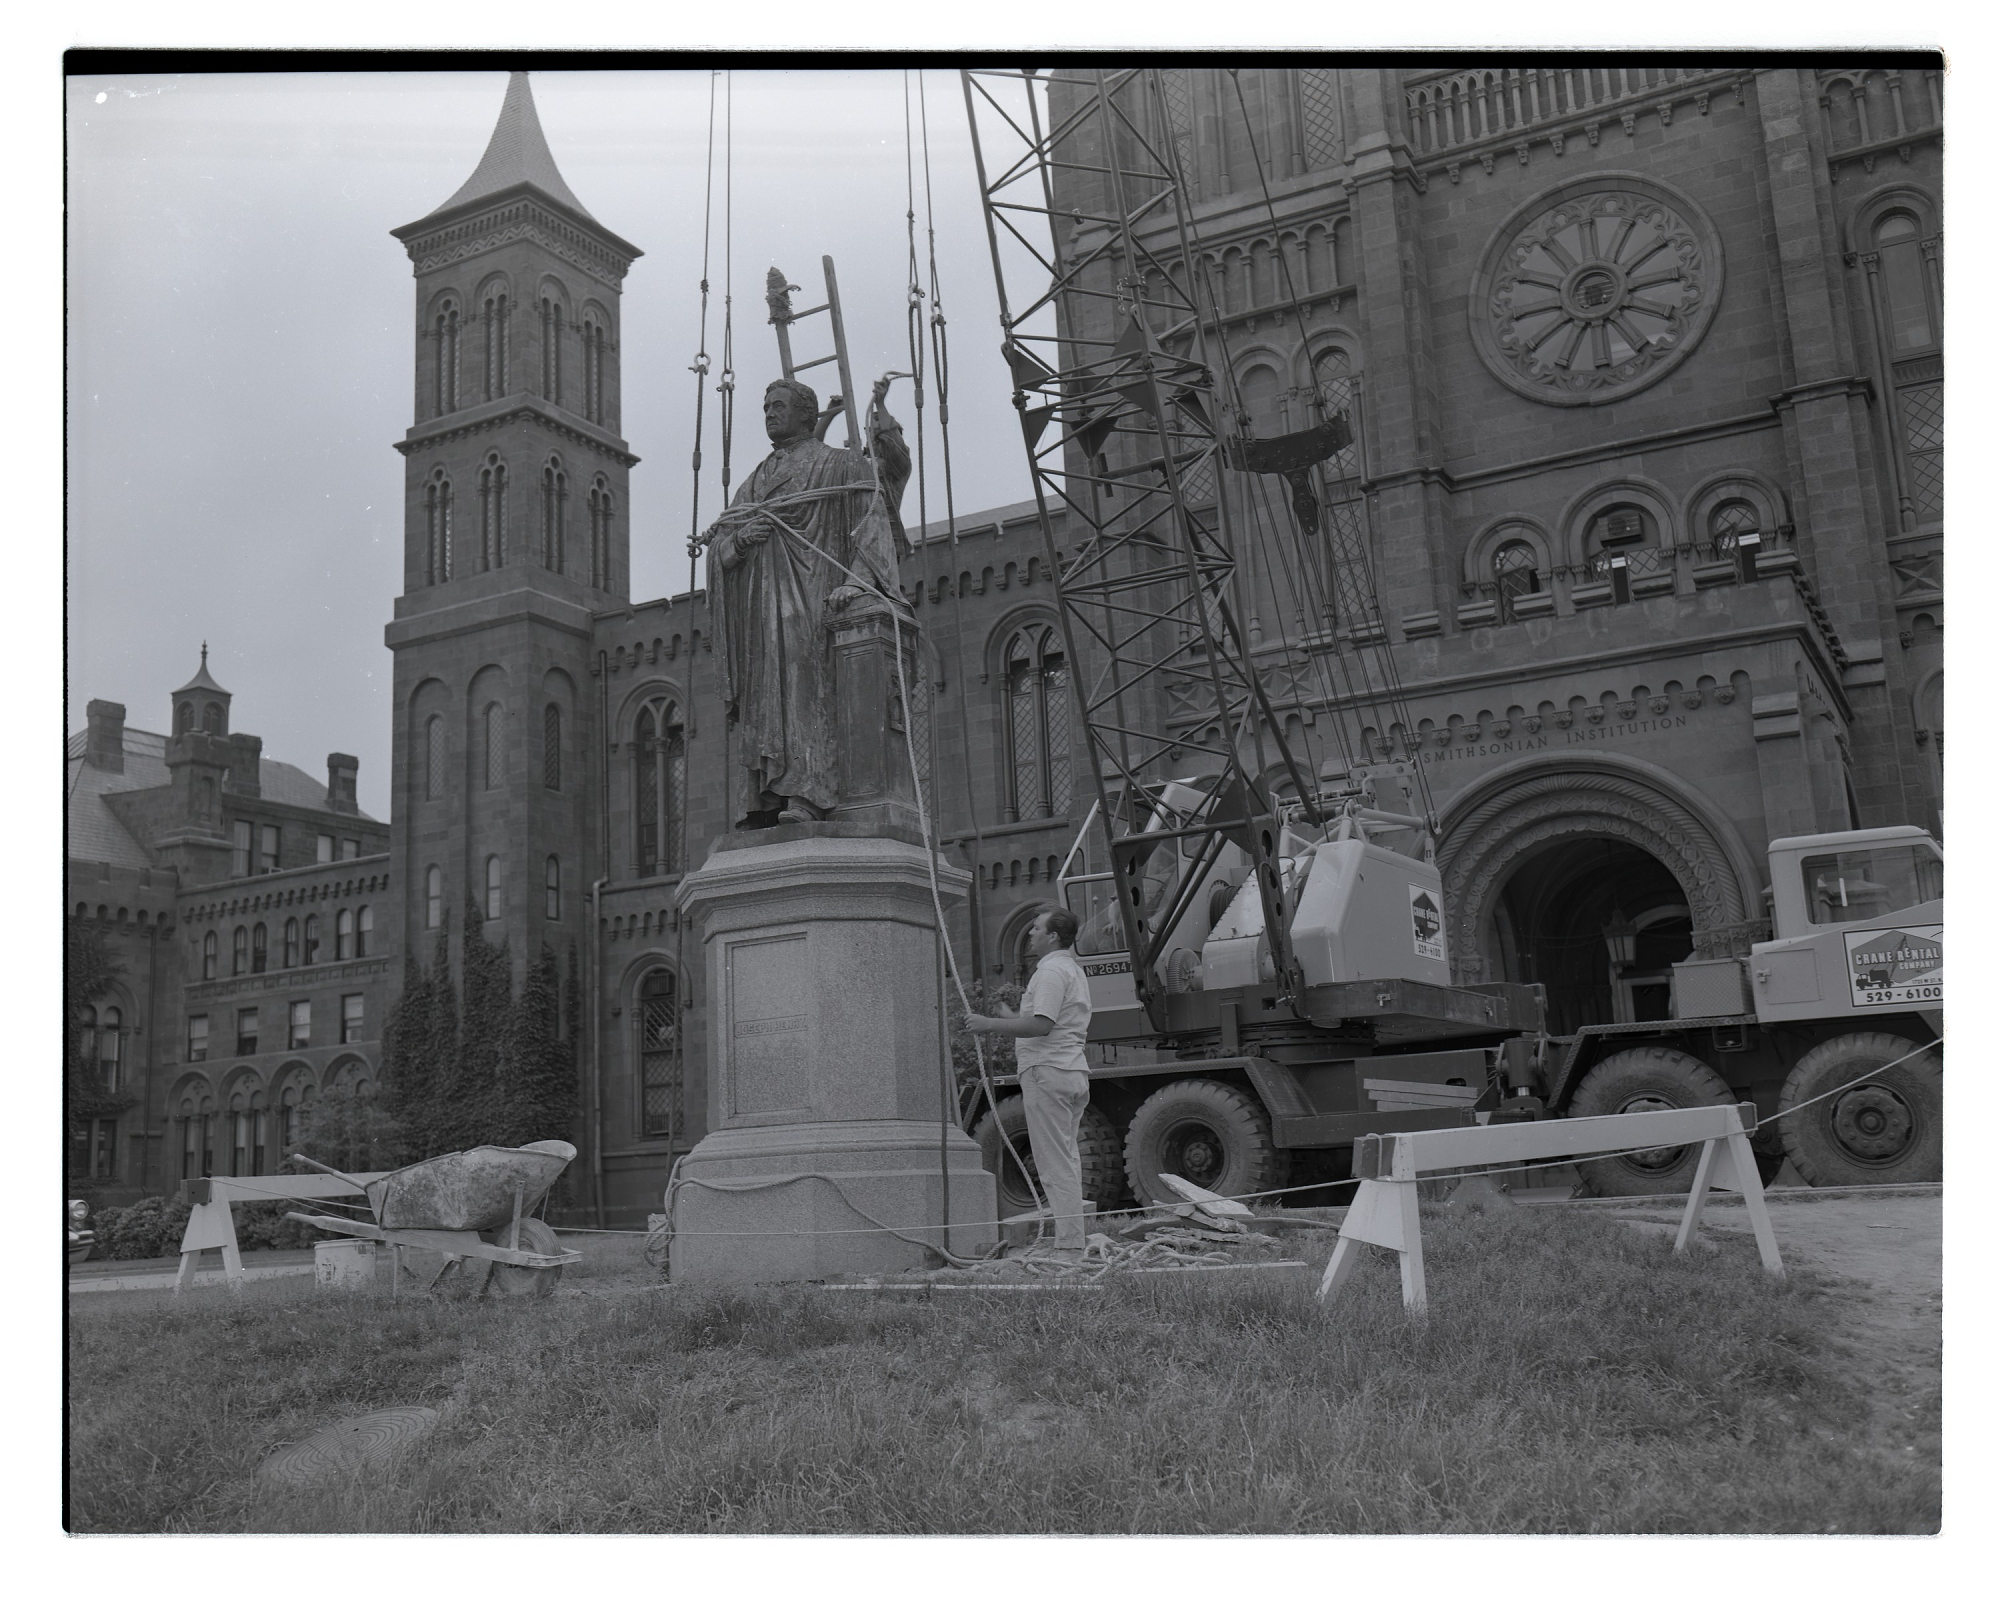 In 1965, the Joseph Henry statue was turned outward, so that he symbolically faced the Smithsonian museums that followed in his footsteps. Courtesy of the Smithsonian Institution Archives.